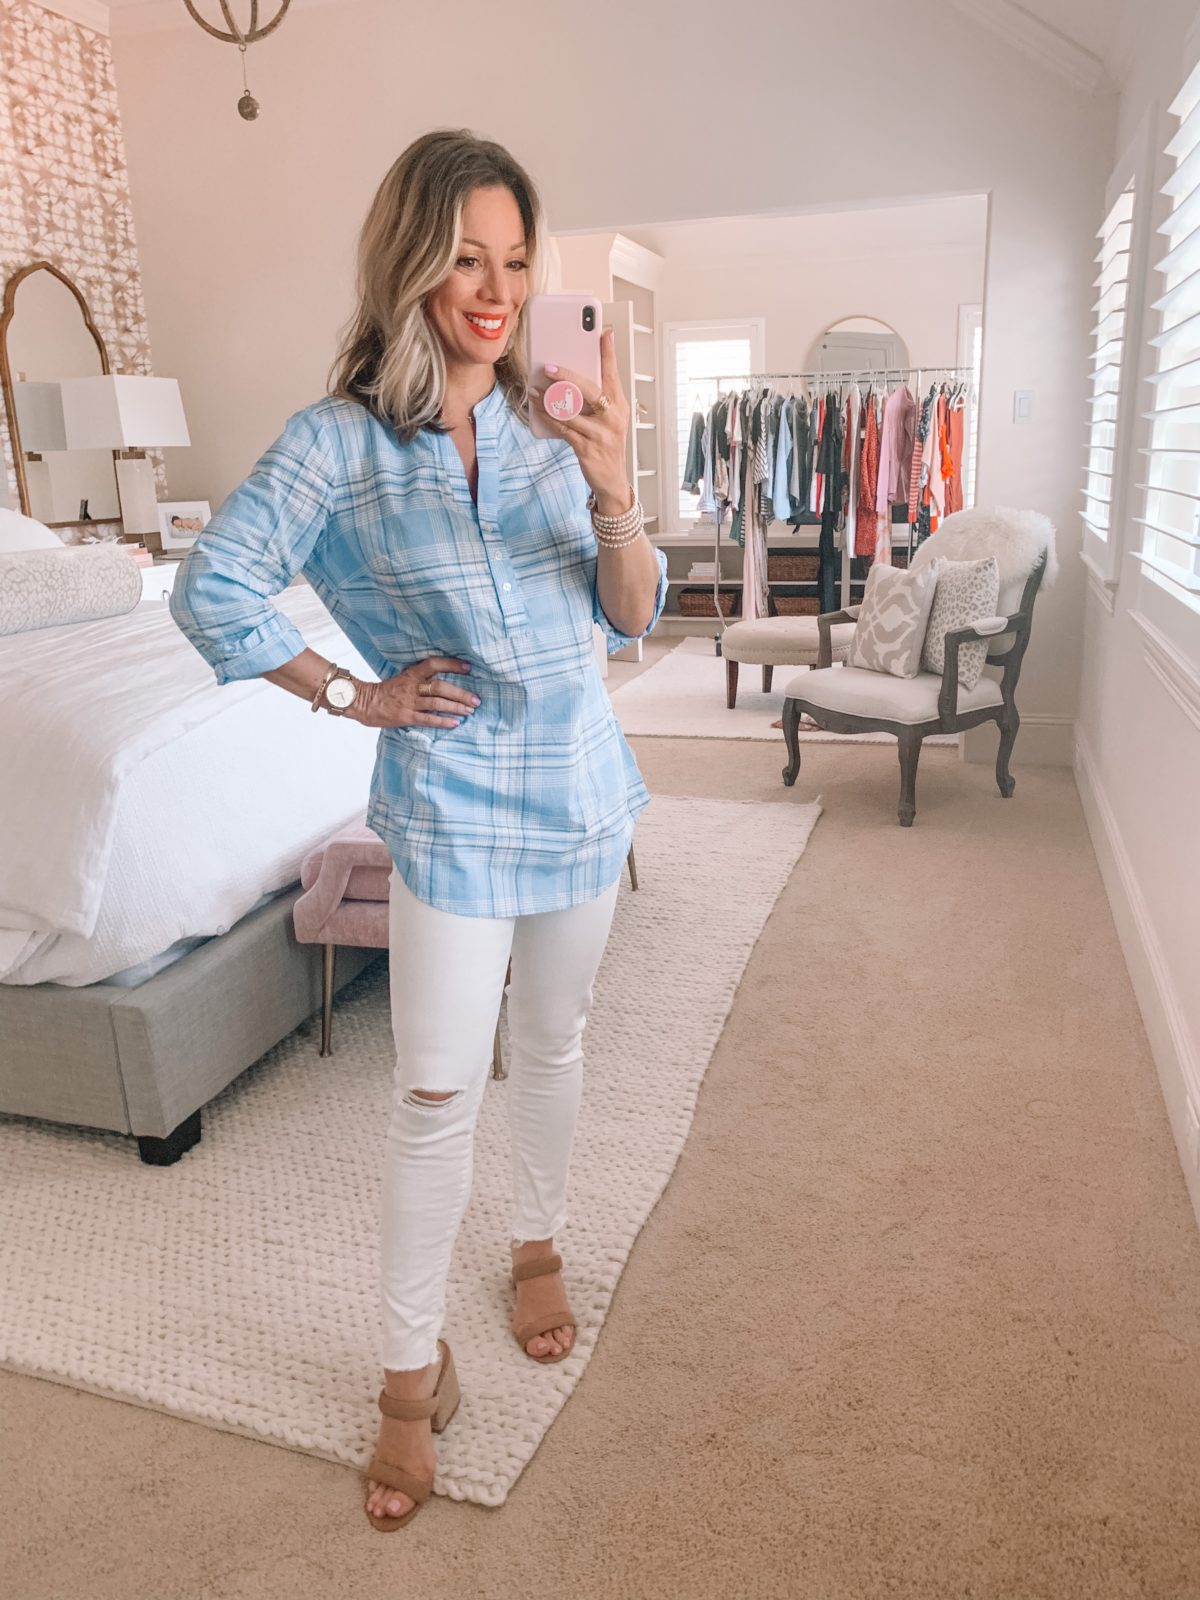 Amazon Fashion Finds, Blue Plaid Split Neck Top, White Distressed Jeans, Slide Sandals